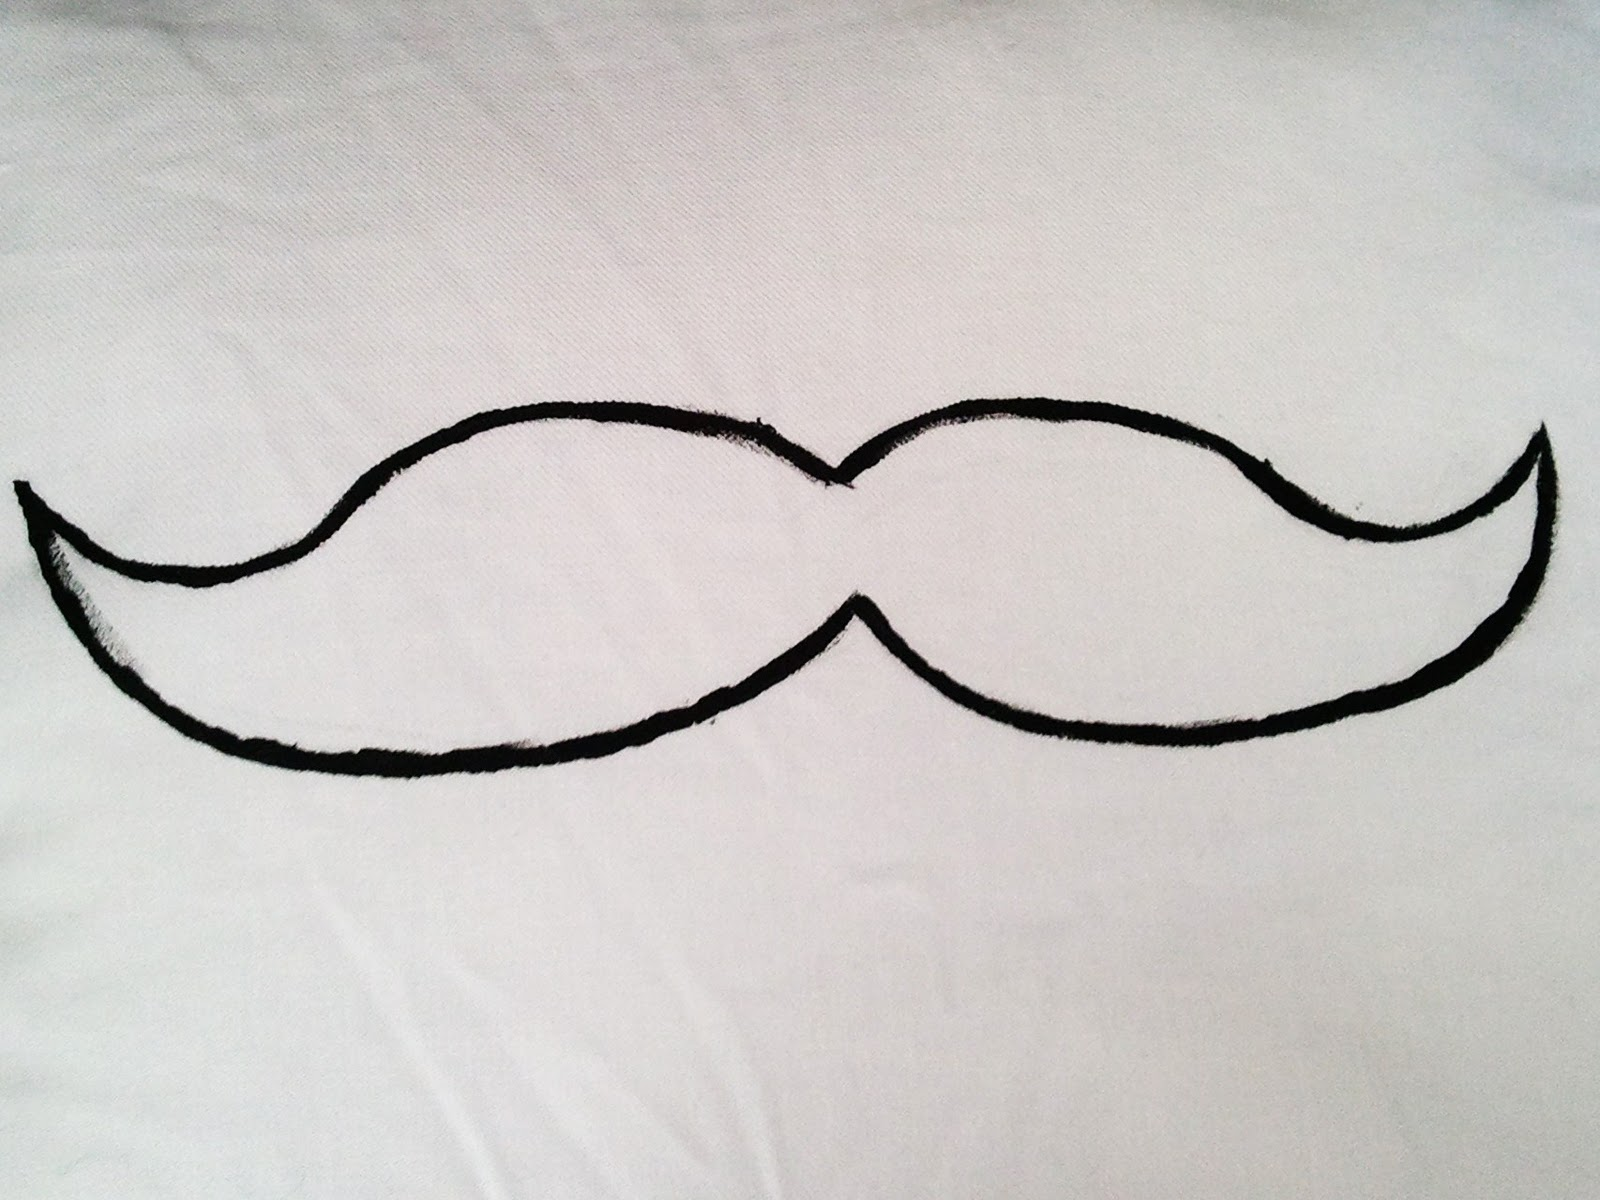 Mustache outlineMustache Outline